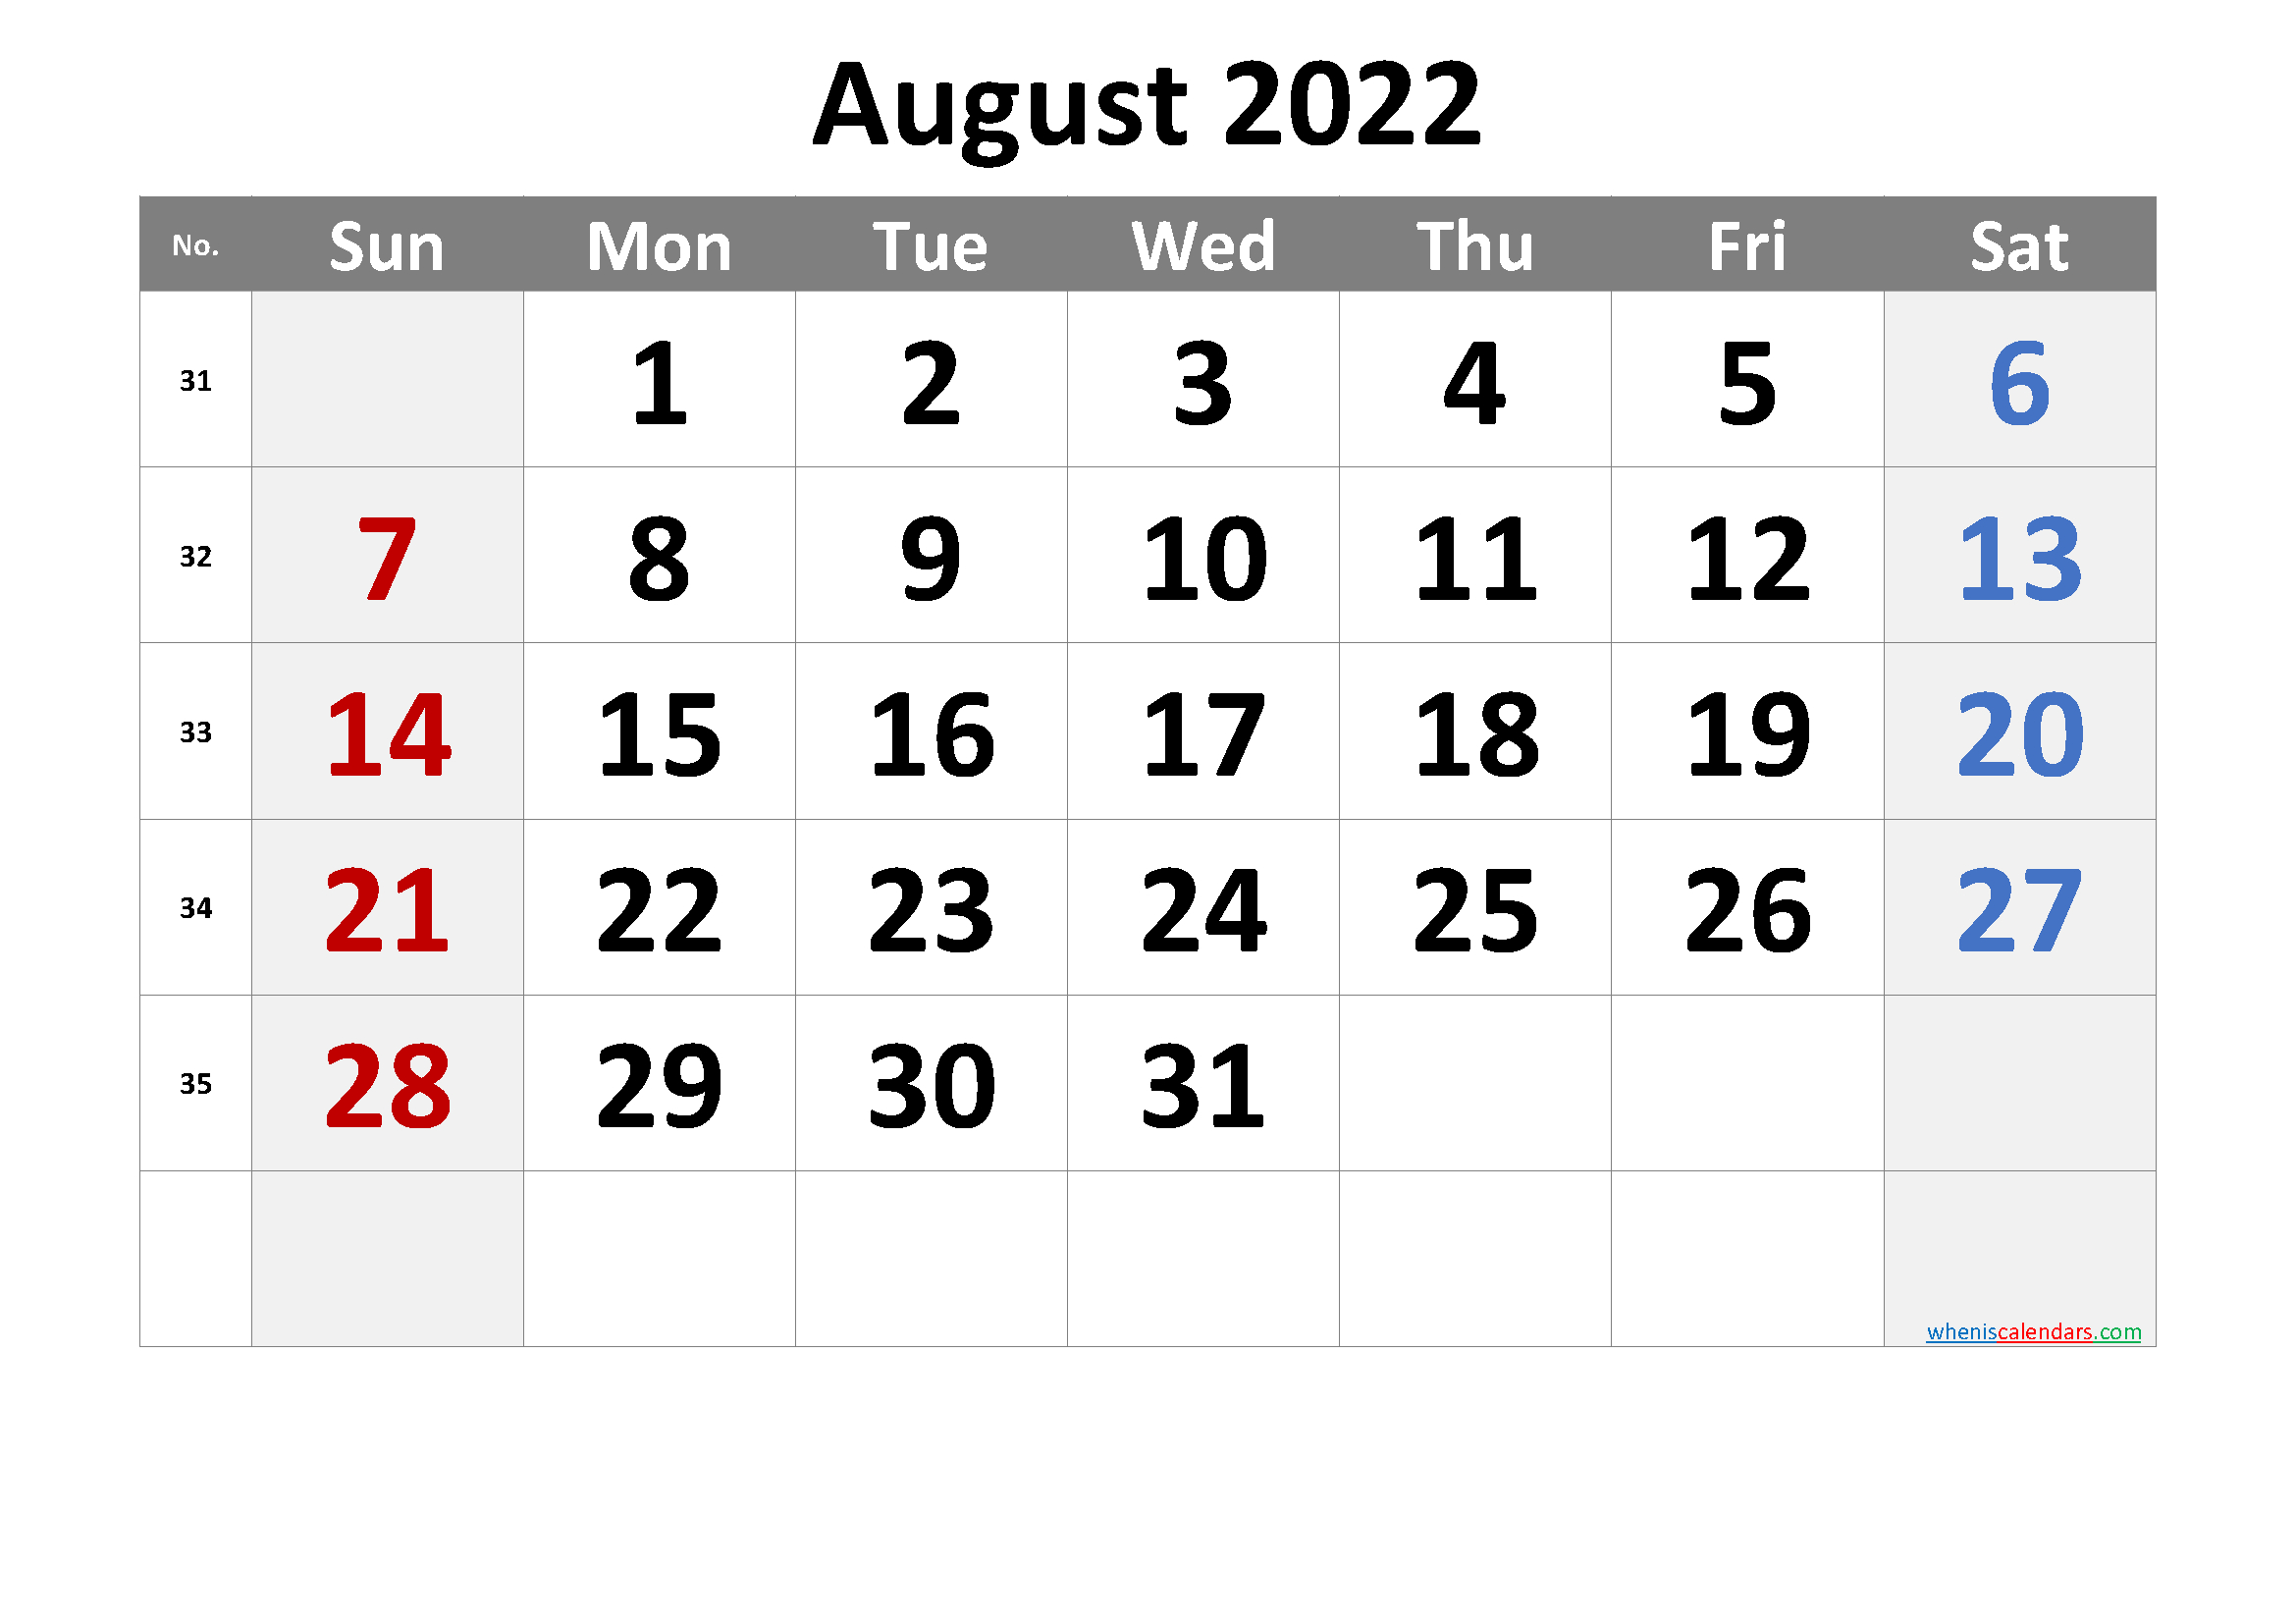 August 2022 Printable Calendar With Holidays - 6 Templates with 2022 Day To Day Calendars For Men